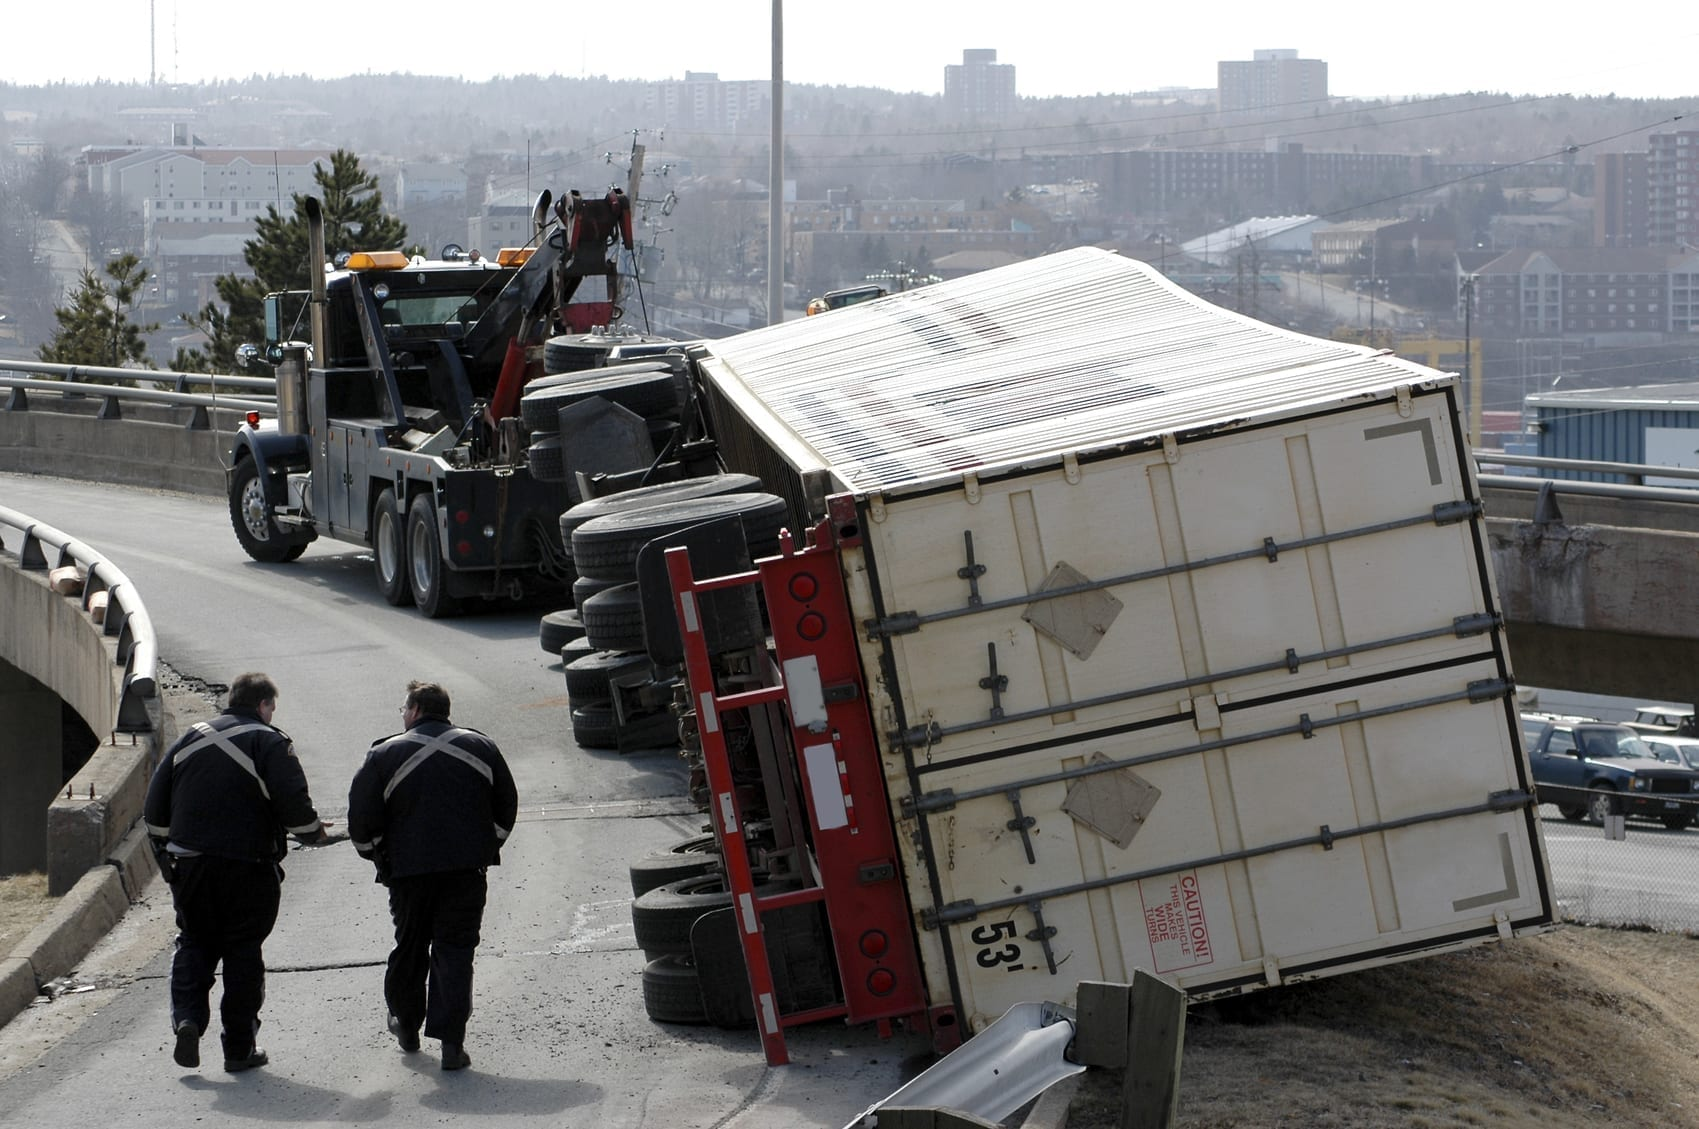 18-Wheeler Accident On A Ramp Stock Photo